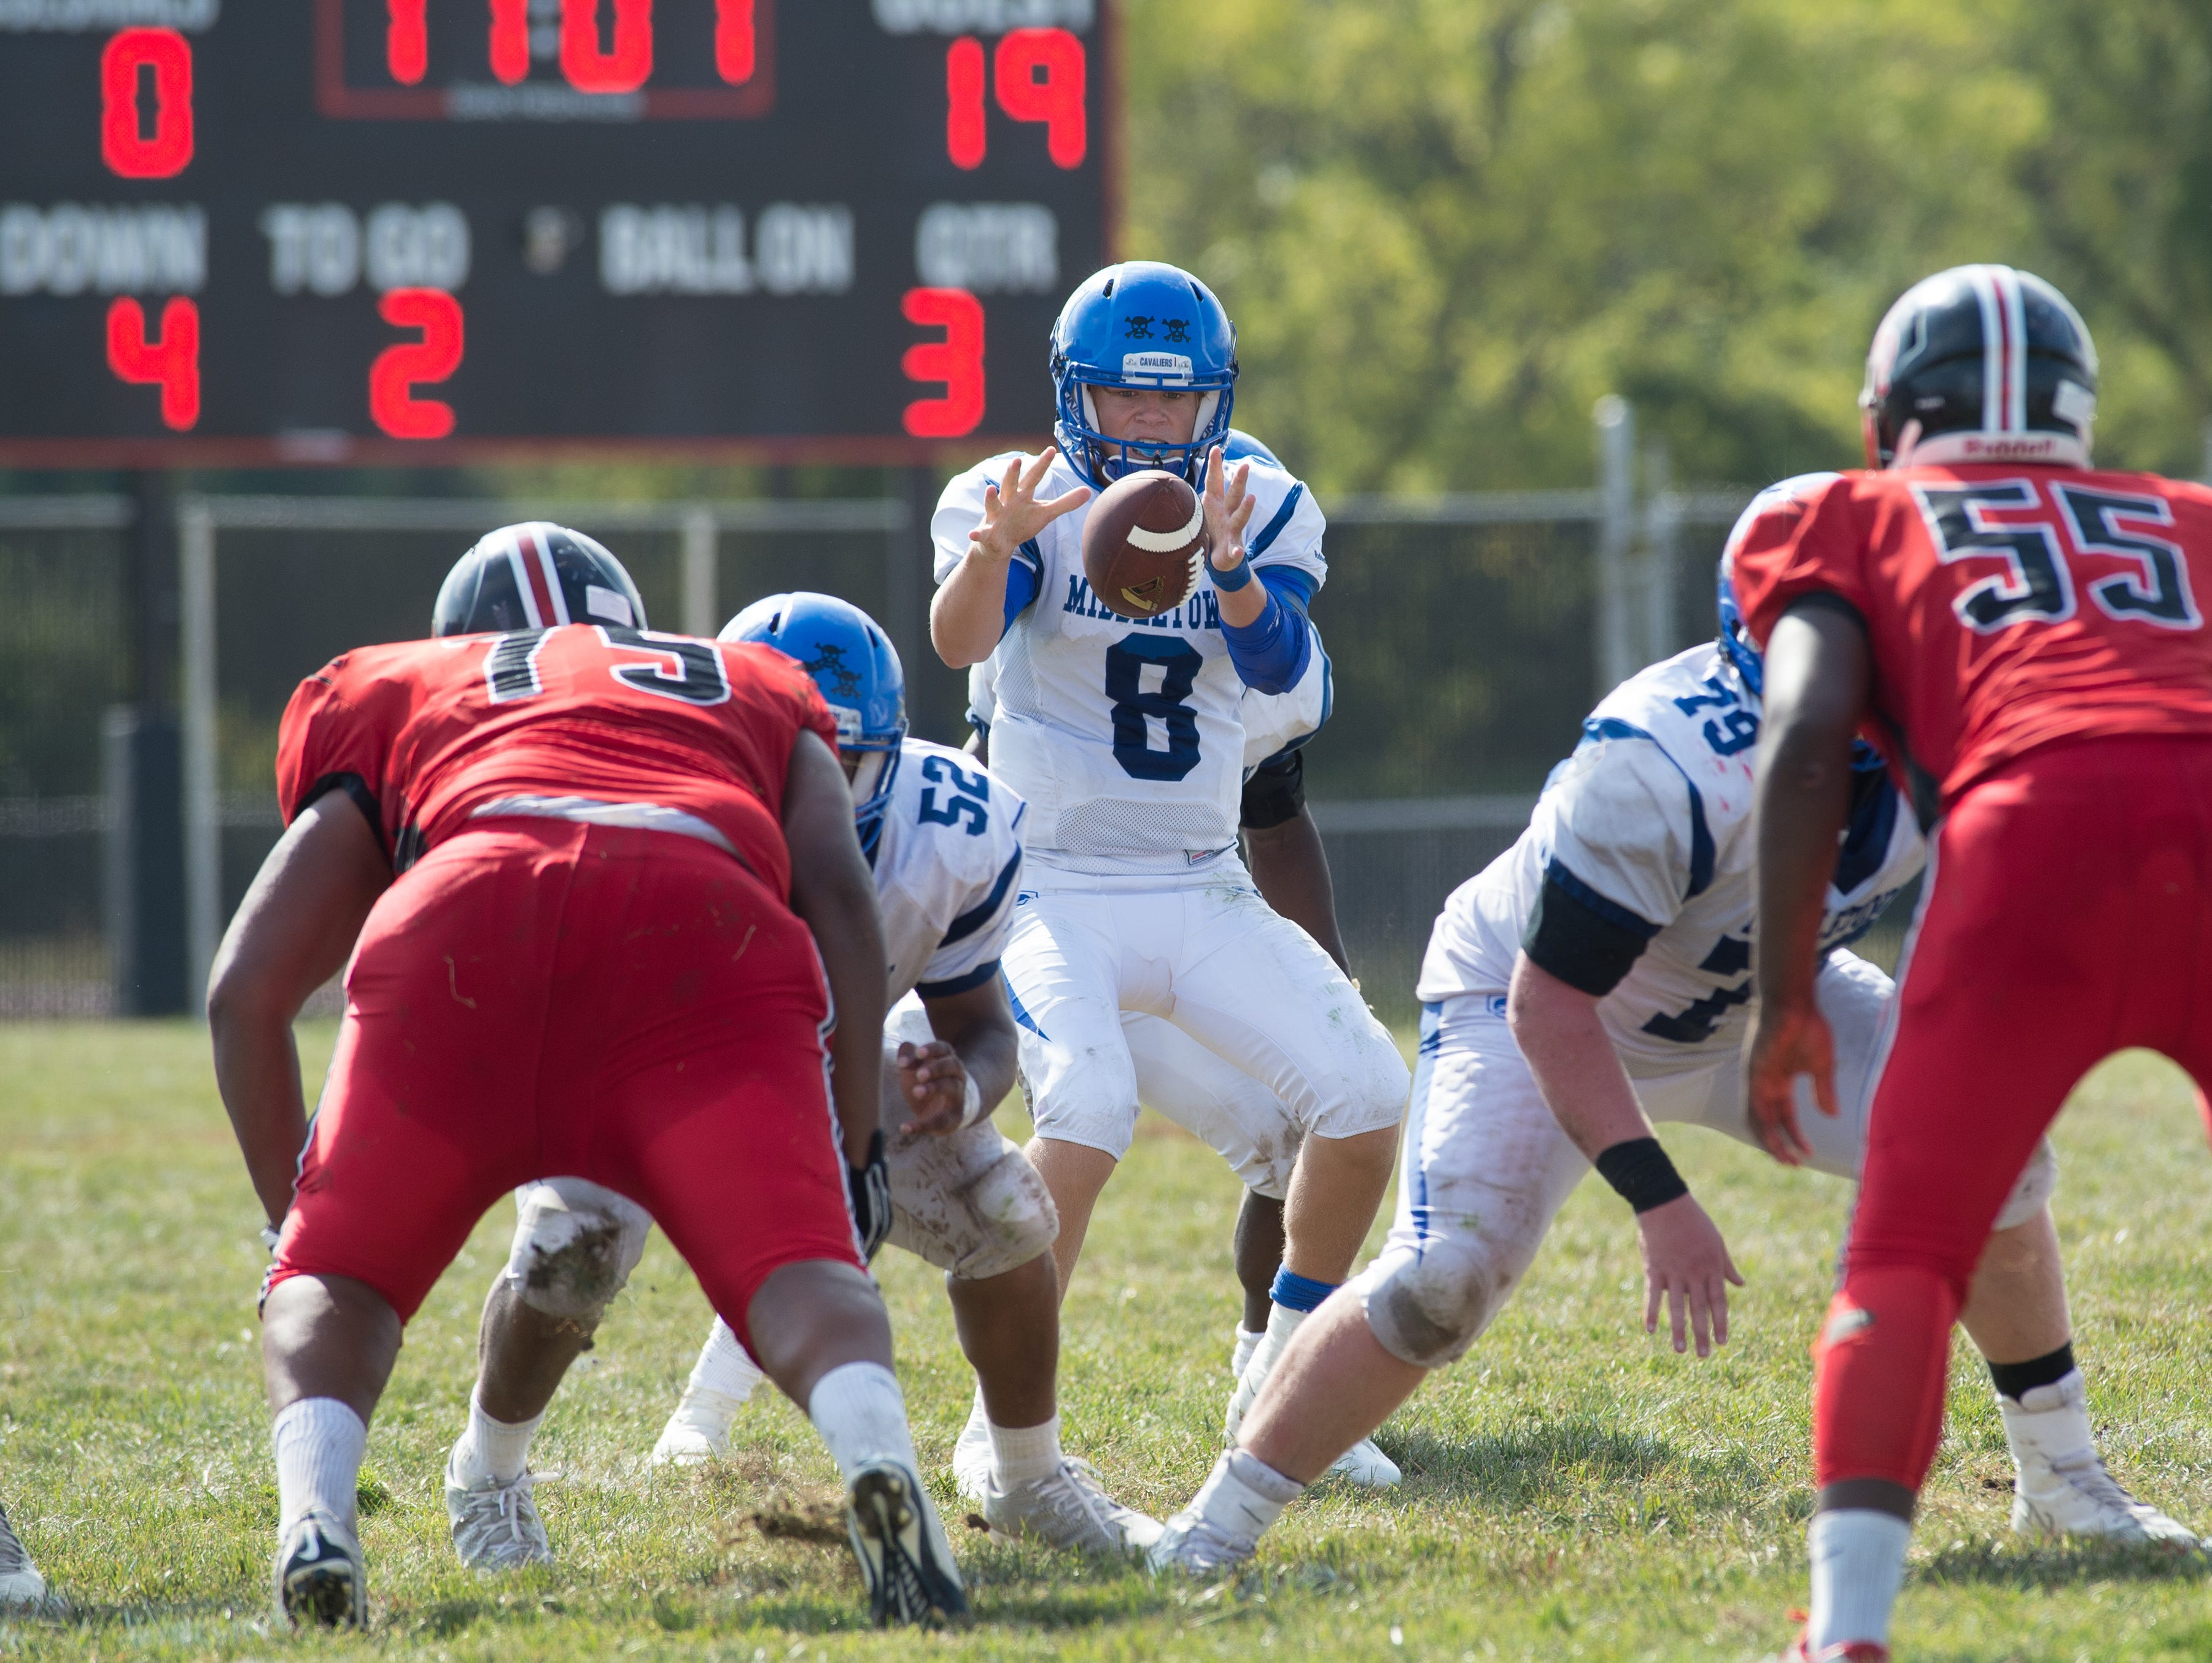 Middletown's quarterback Drew Fry (8) hikes the ball in their game against William Penn.